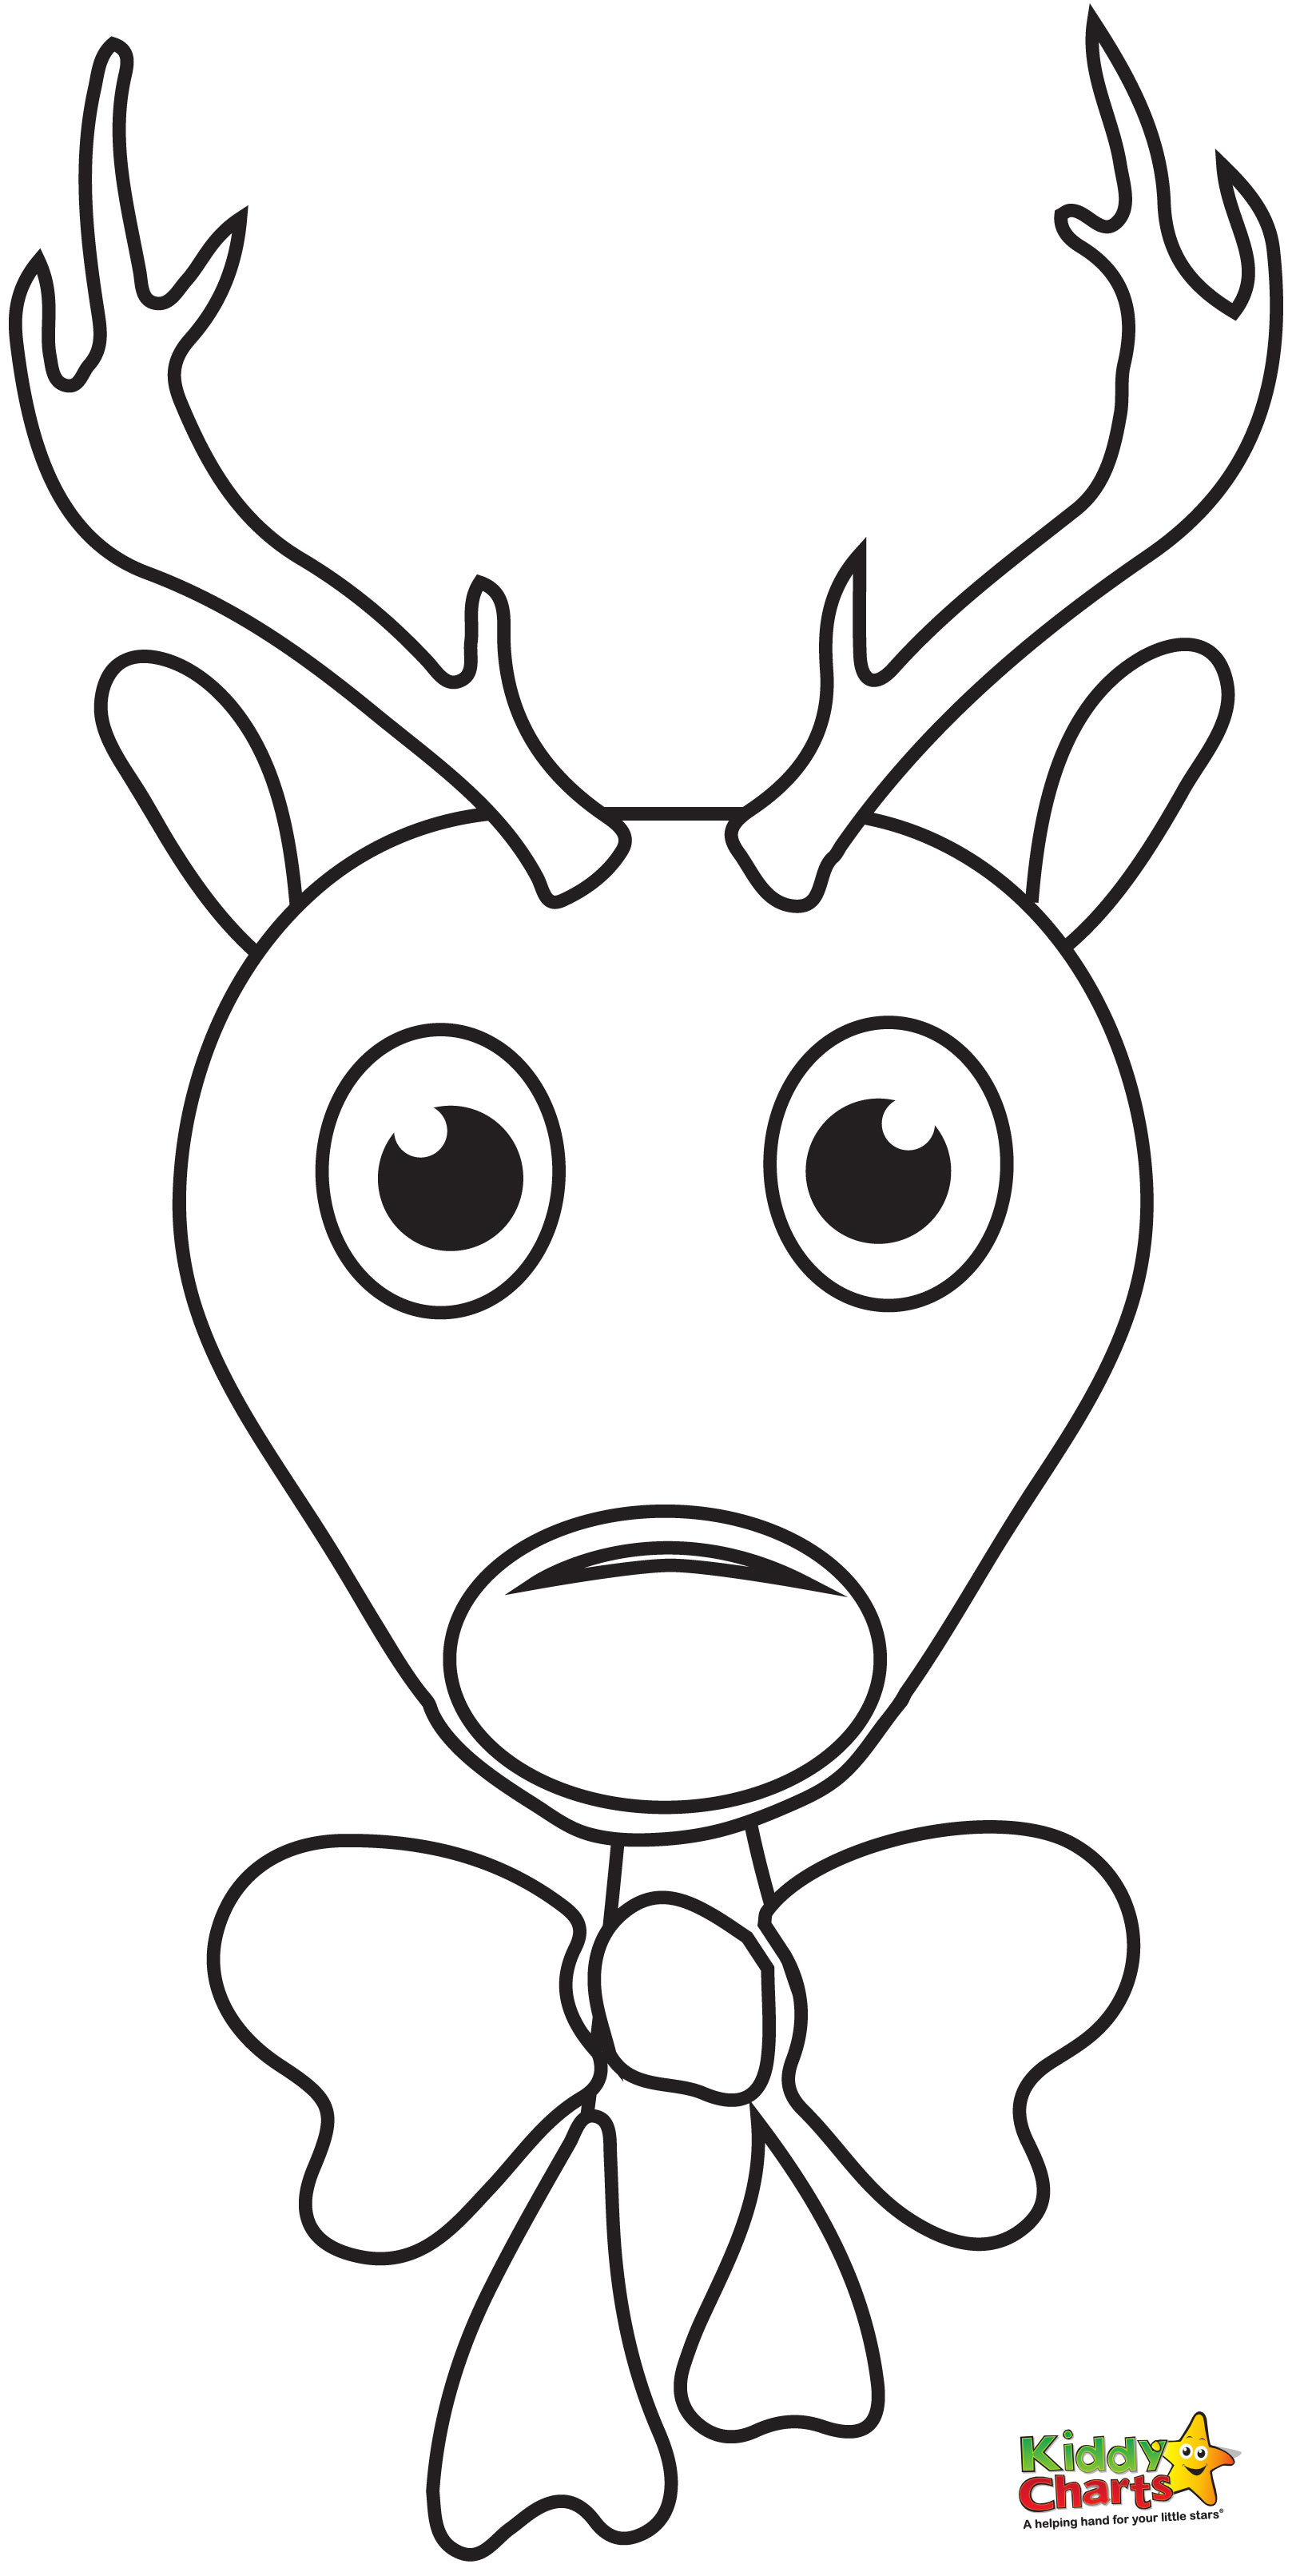 1627x3224 Rudolph The Red Nosed Reindeer Coloring Pages